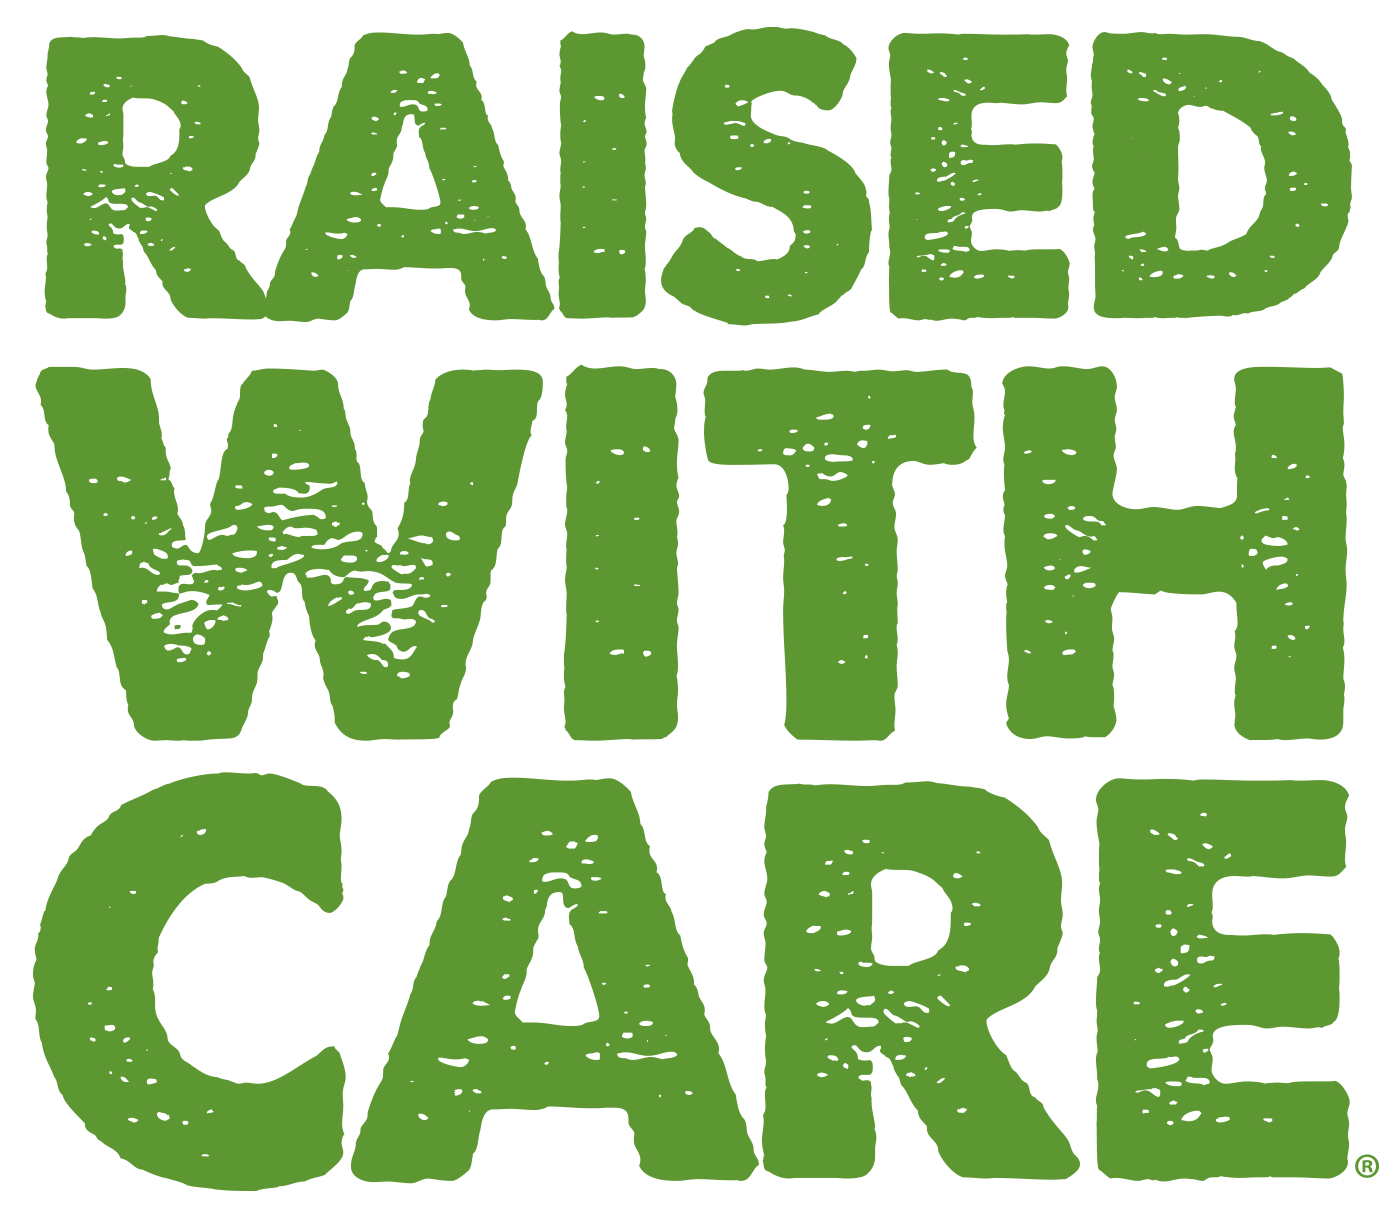 raisedwithcare_green